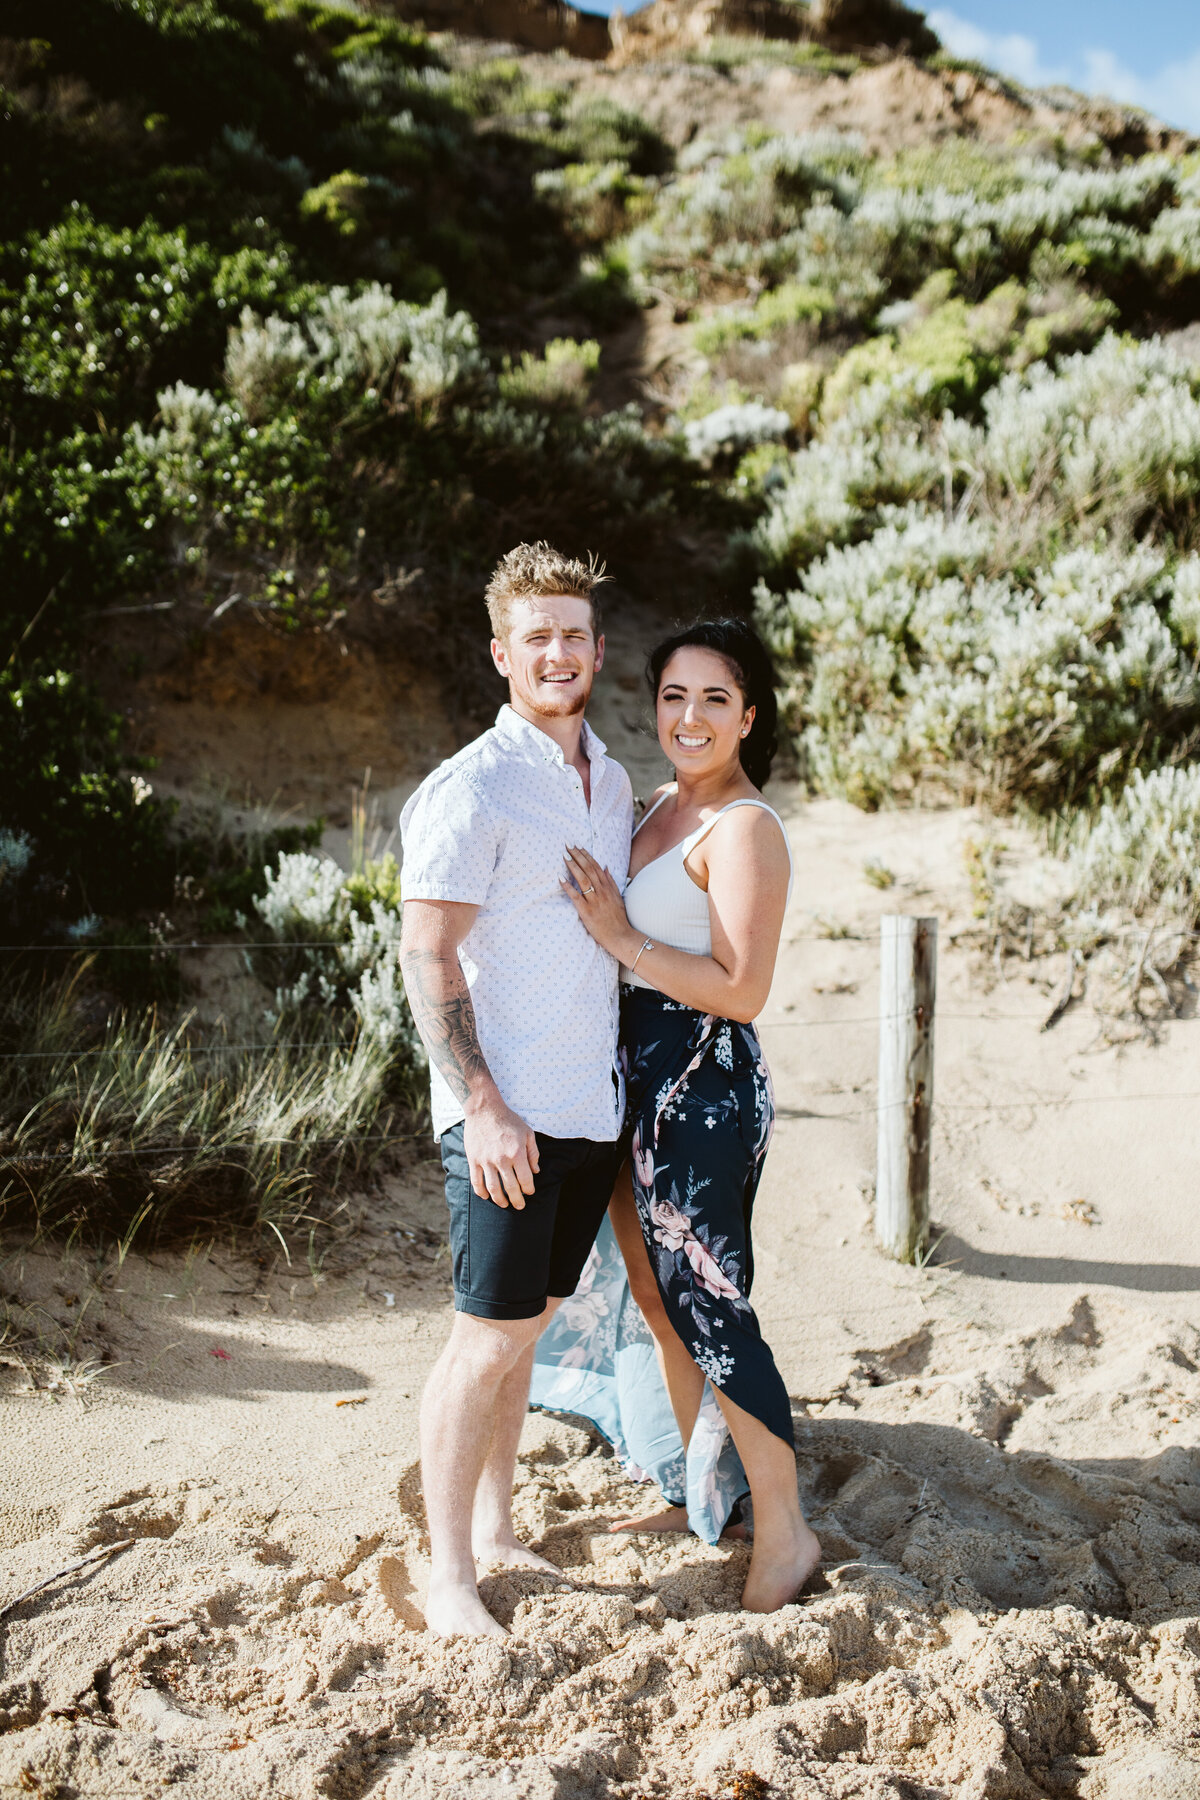 Belle_Martin_Photography_Sorrento_Beach_Engagement-1